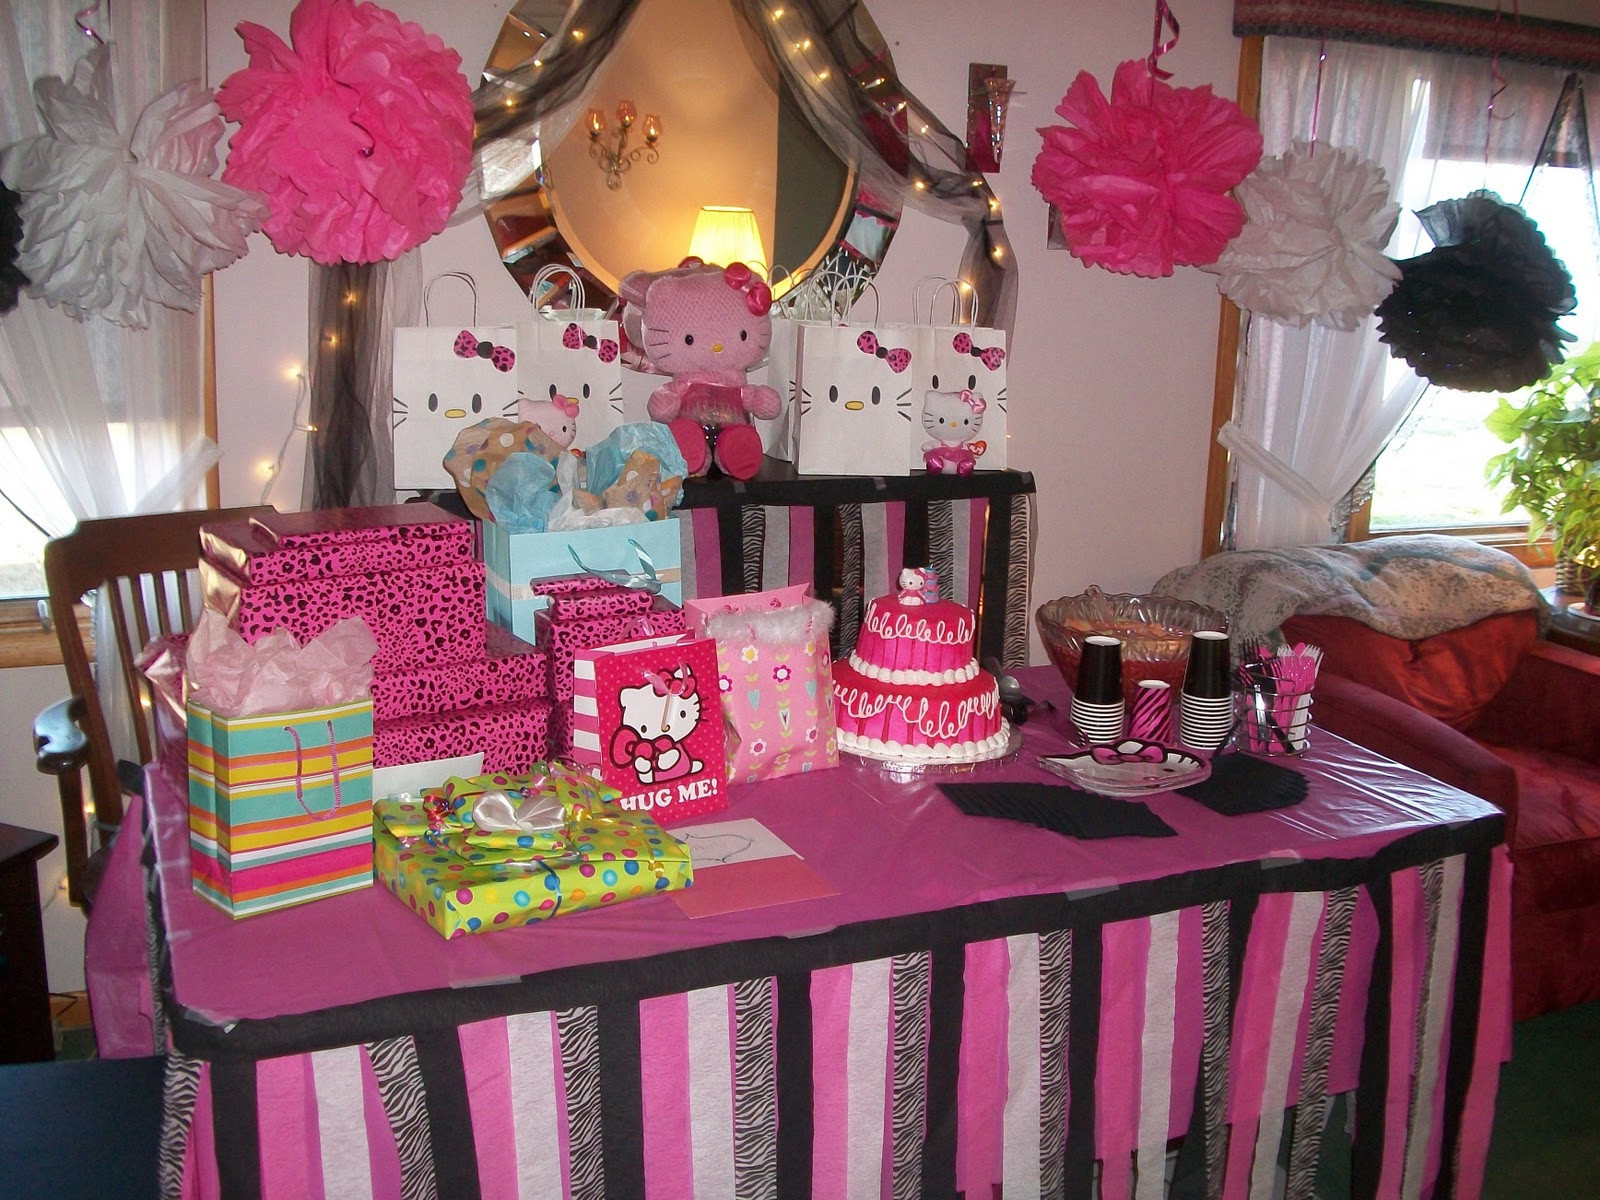 Best ideas about Hello Kitty Birthday Decorations . Save or Pin The Phoenix Spirit Now.